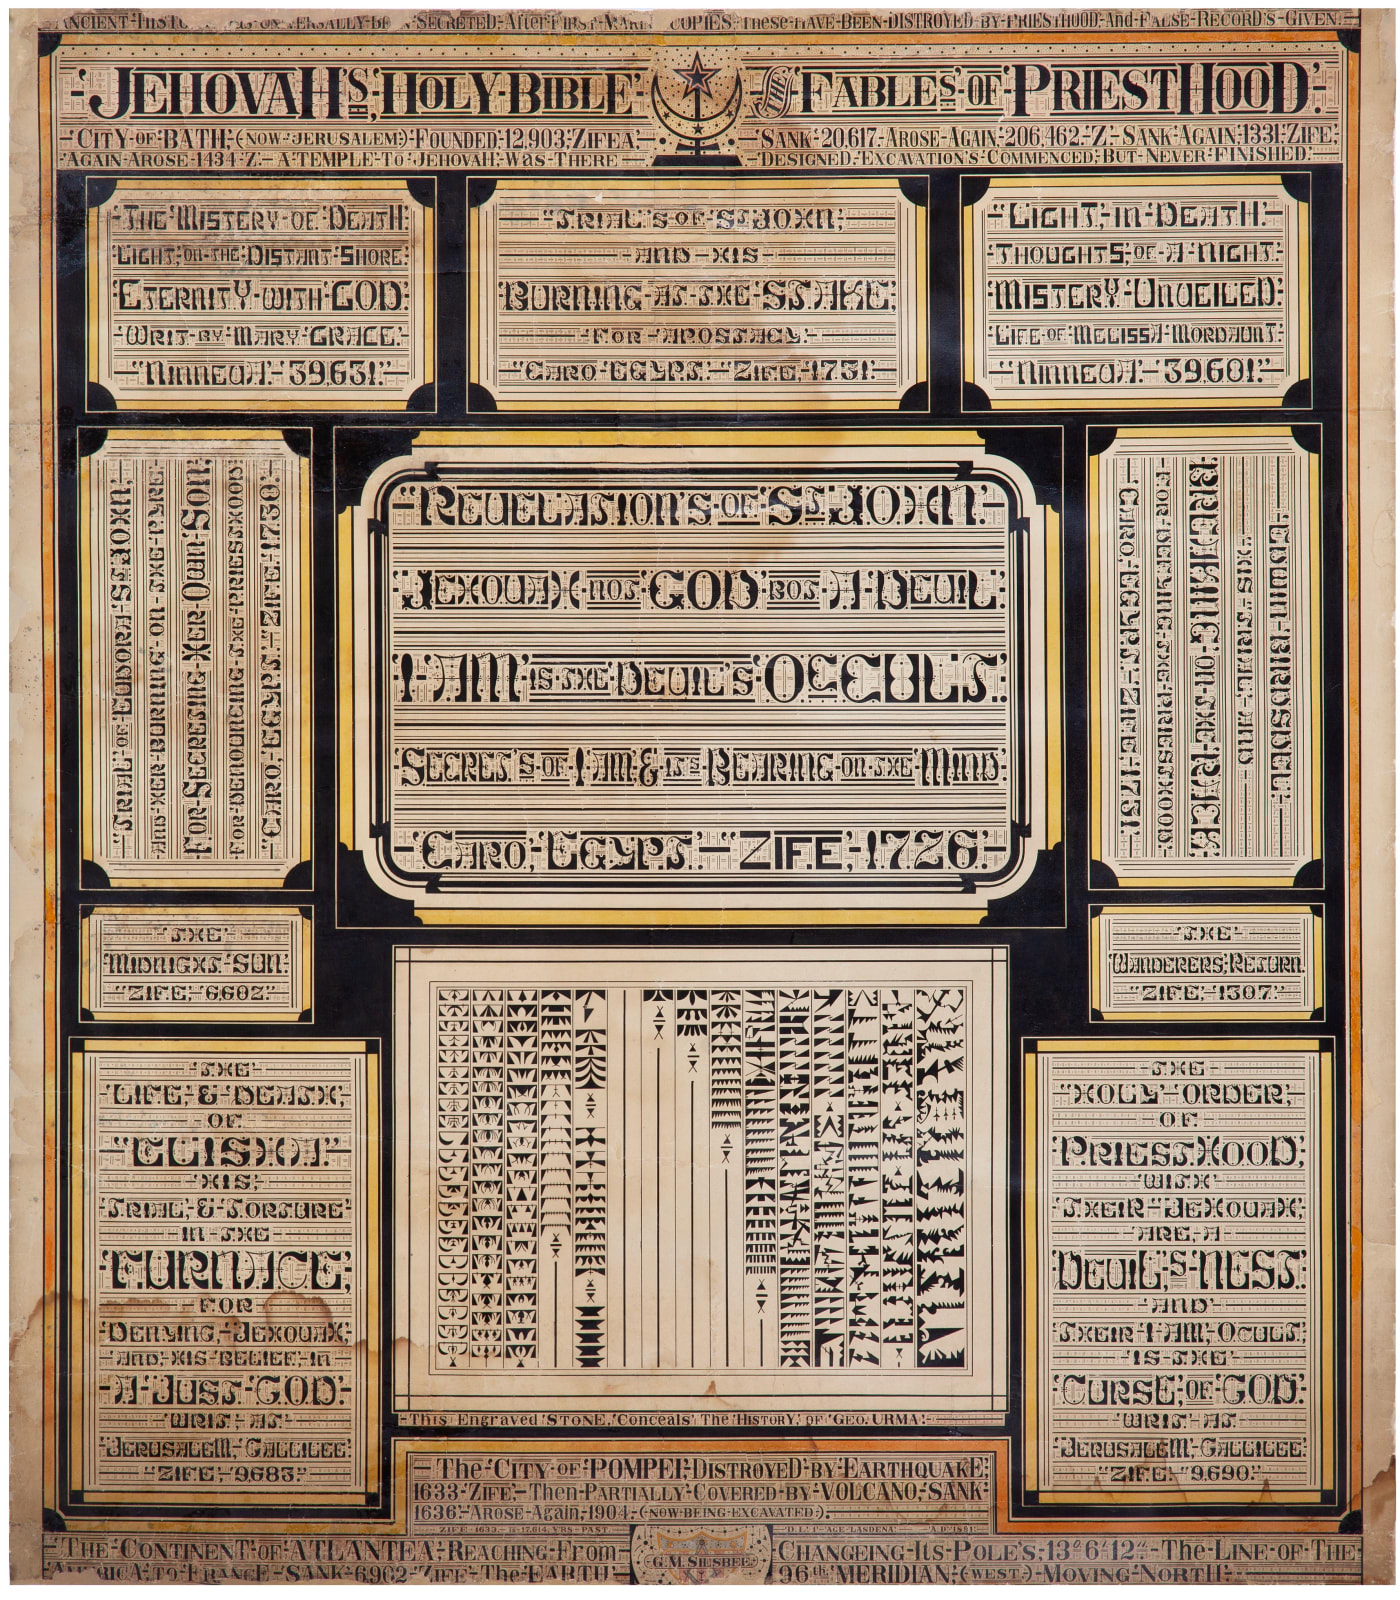 Jehovah's Holy Bible - Fables of Priesthood, ca. 1891 Ink on paper 40 1/2 x 35 5/8 in 102.9 x 90.5 cm (GMS6)